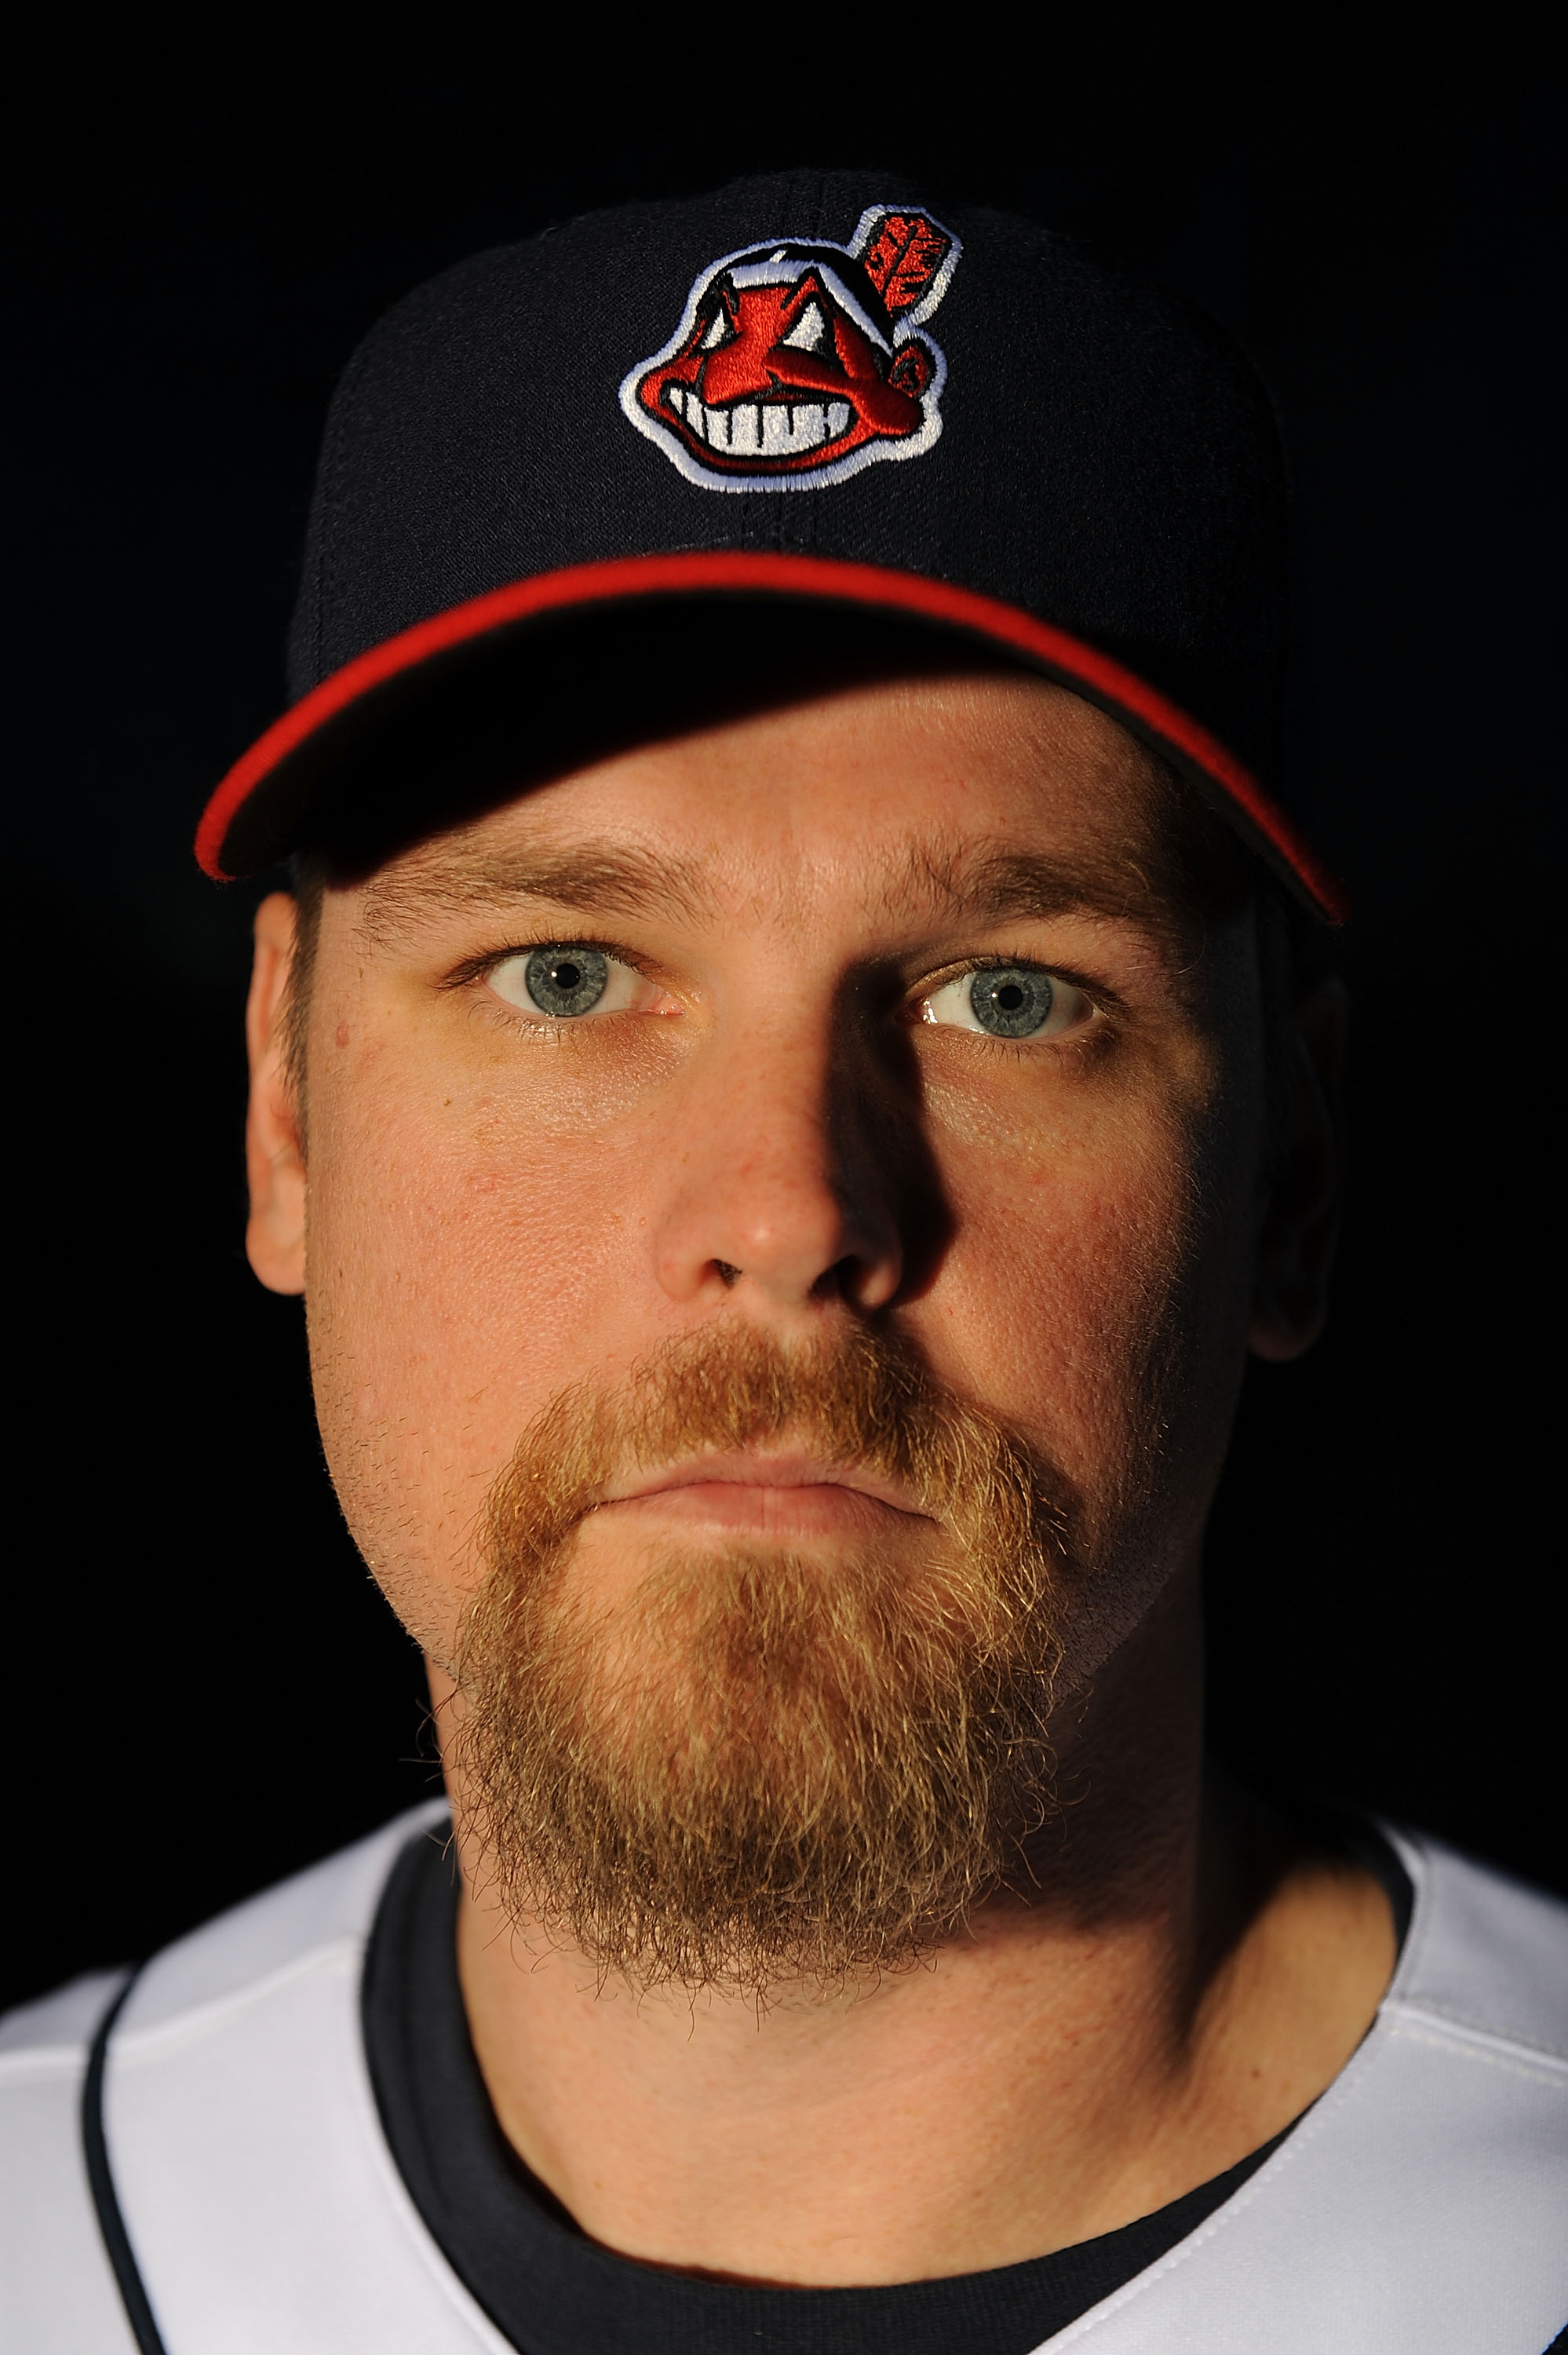 GOODYEAR, AZ - FEBRUARY 21:  Kerry Wood of the Cleveland Indians poses during photo day at the Indians spring training complex on February 21, 2009 in Goodyear, Arizona.  (Photo by Ronald Martinez/Getty Images)